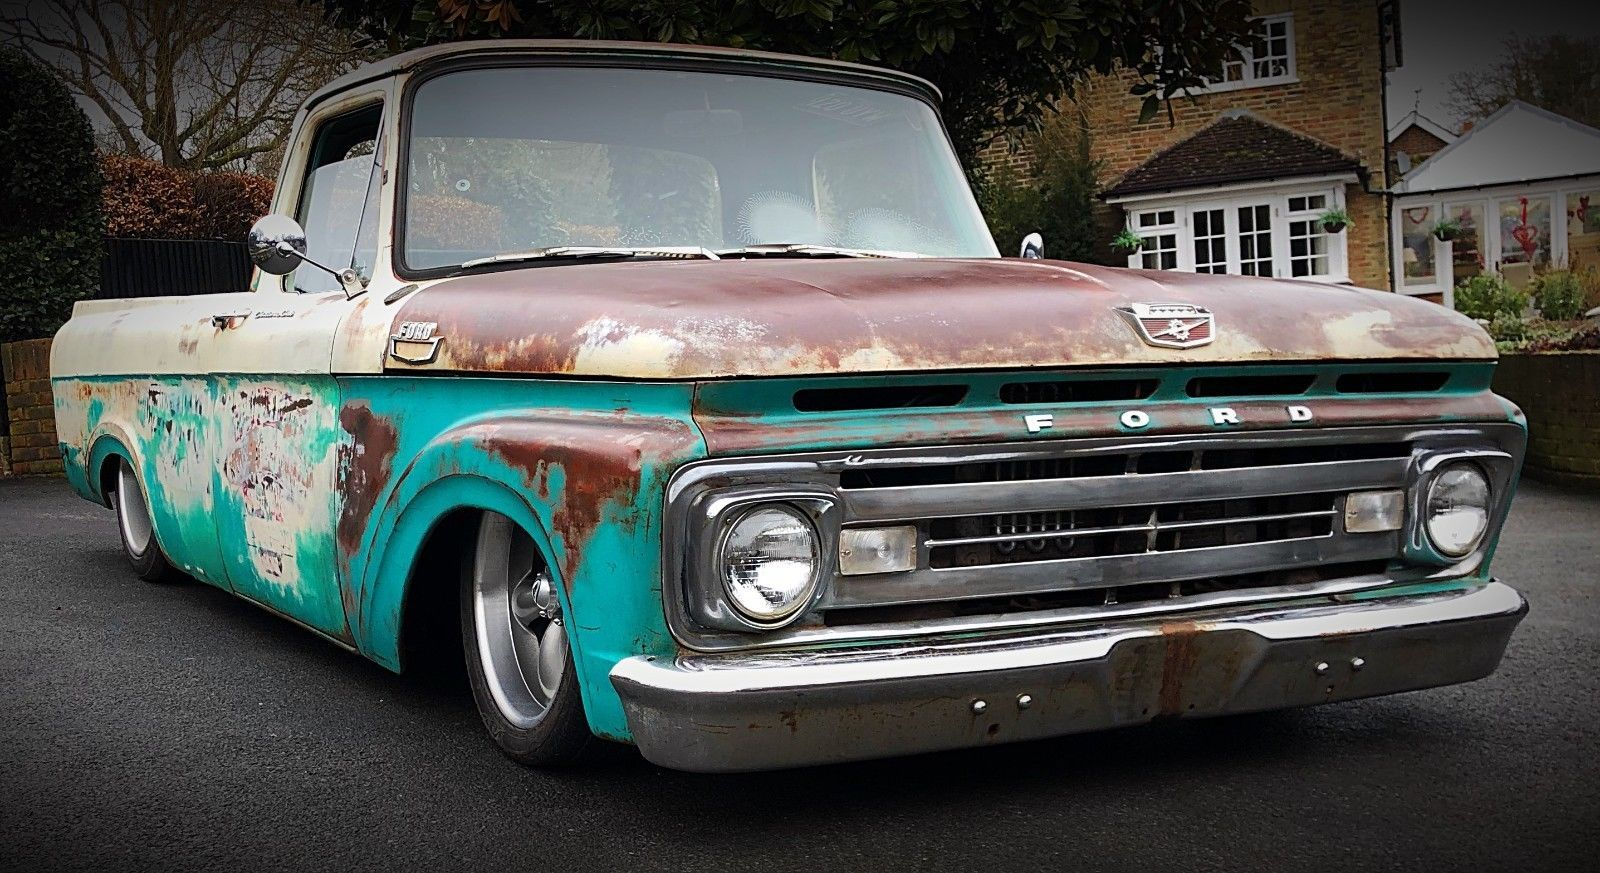 eBay: American Ford F100 Air Ride Short Bed Pickup Truck Chevrolet ...